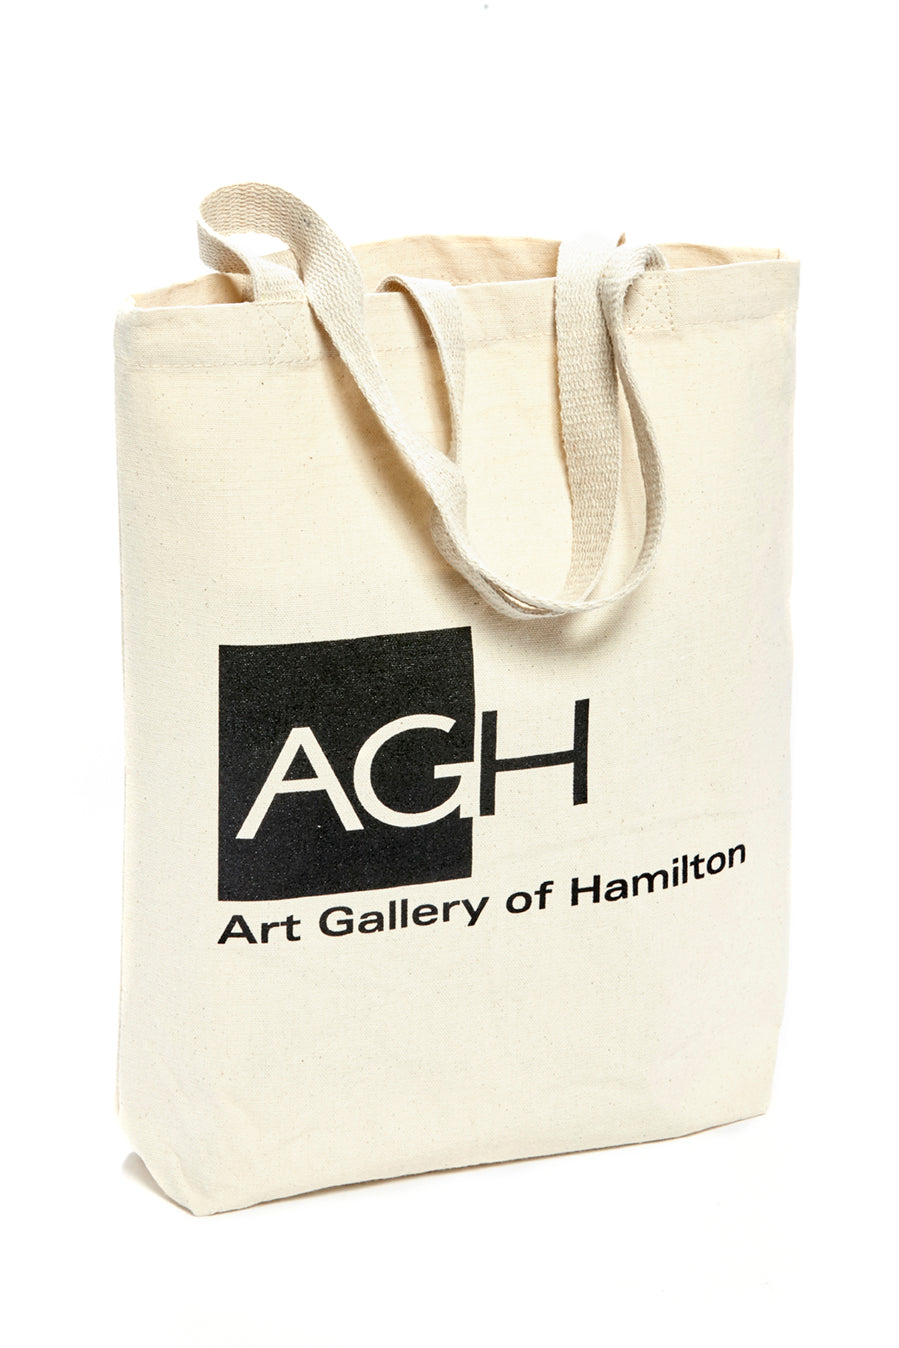 art gallery of hamilton tote bag, white tote bag, black AGH logo design